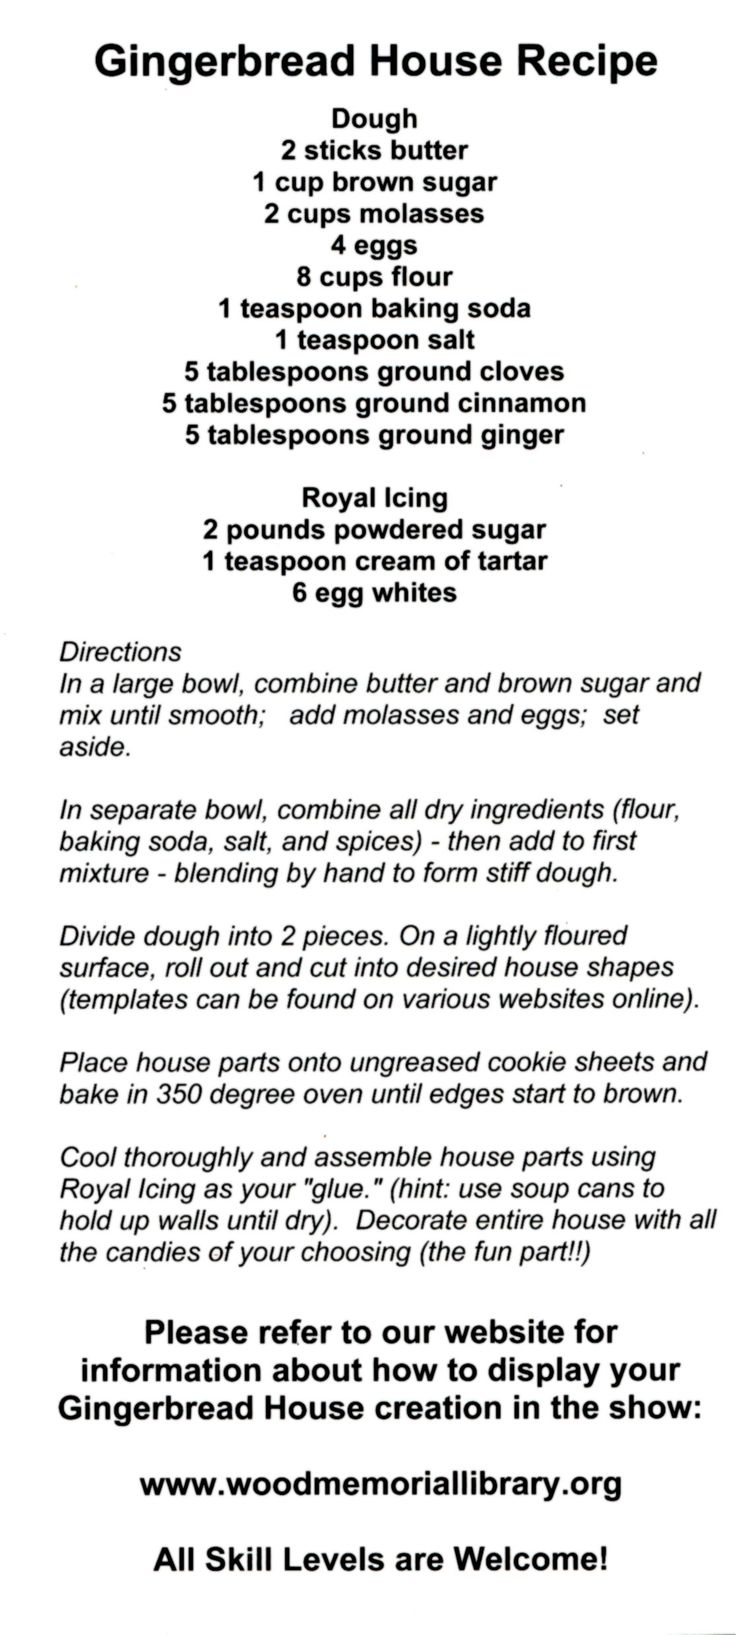 Gingerbread House Recipe used by some WML Friends for the 2011 Festival